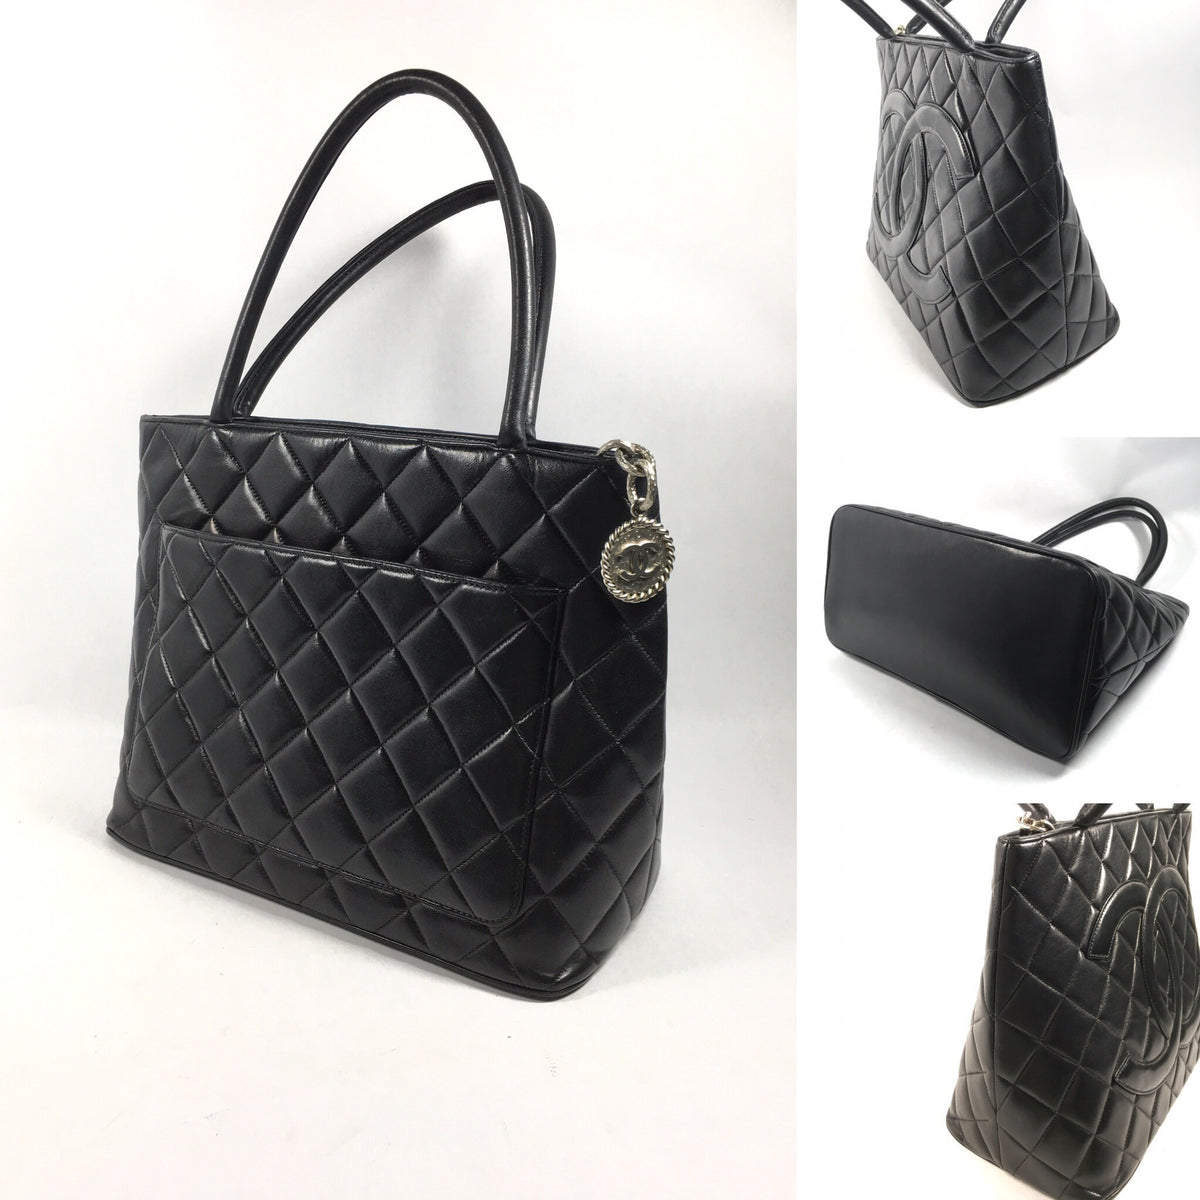 closet medallion bag handbags chanel tote black quilted s caviar leather yoogi